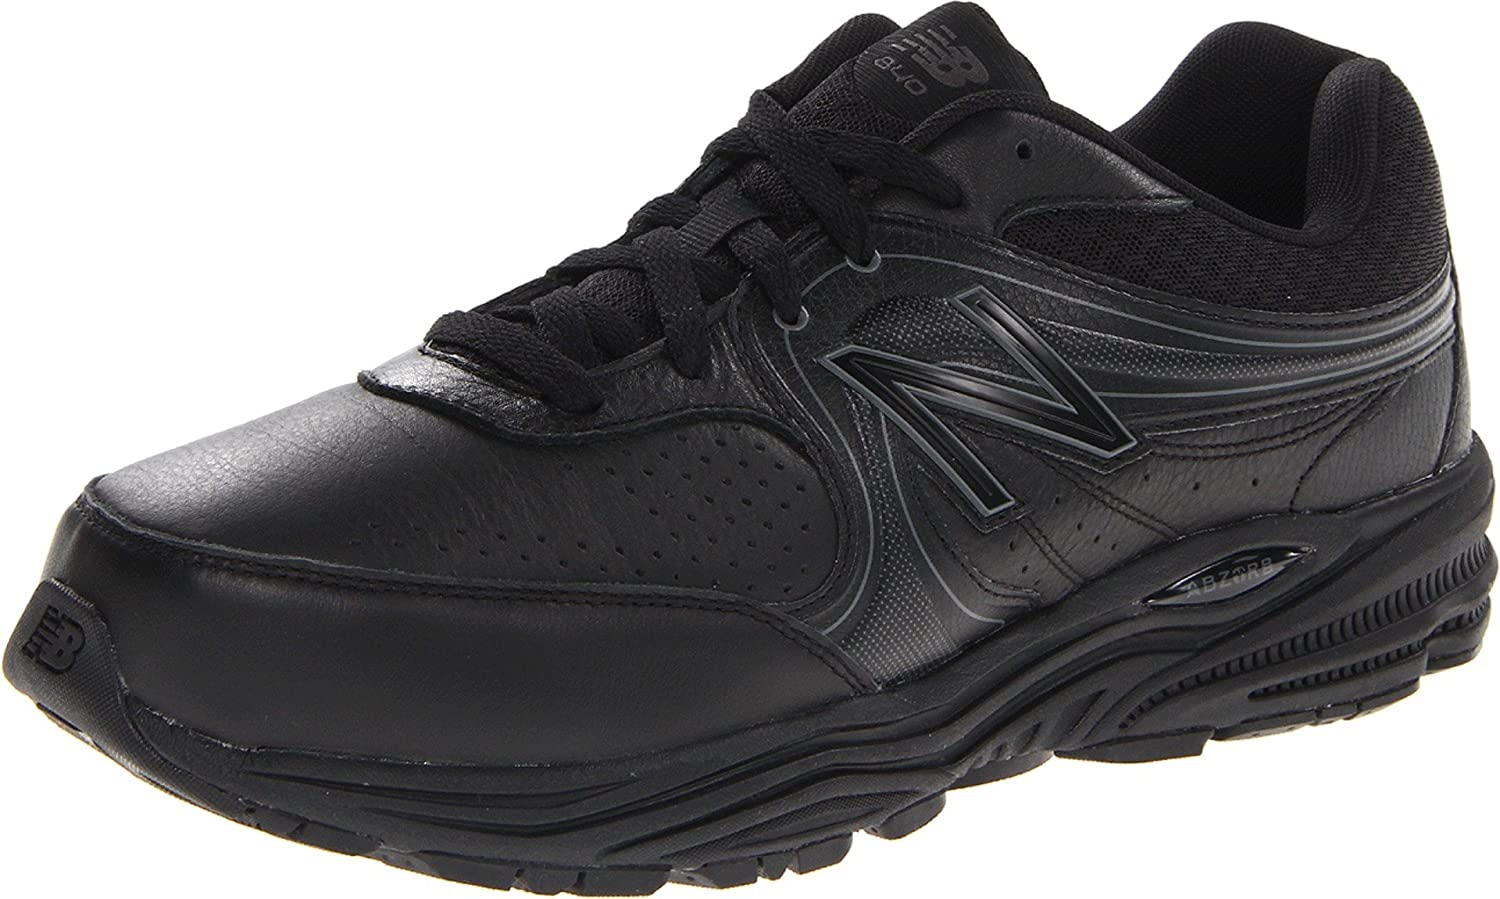 New balance MW840 health walking shoes